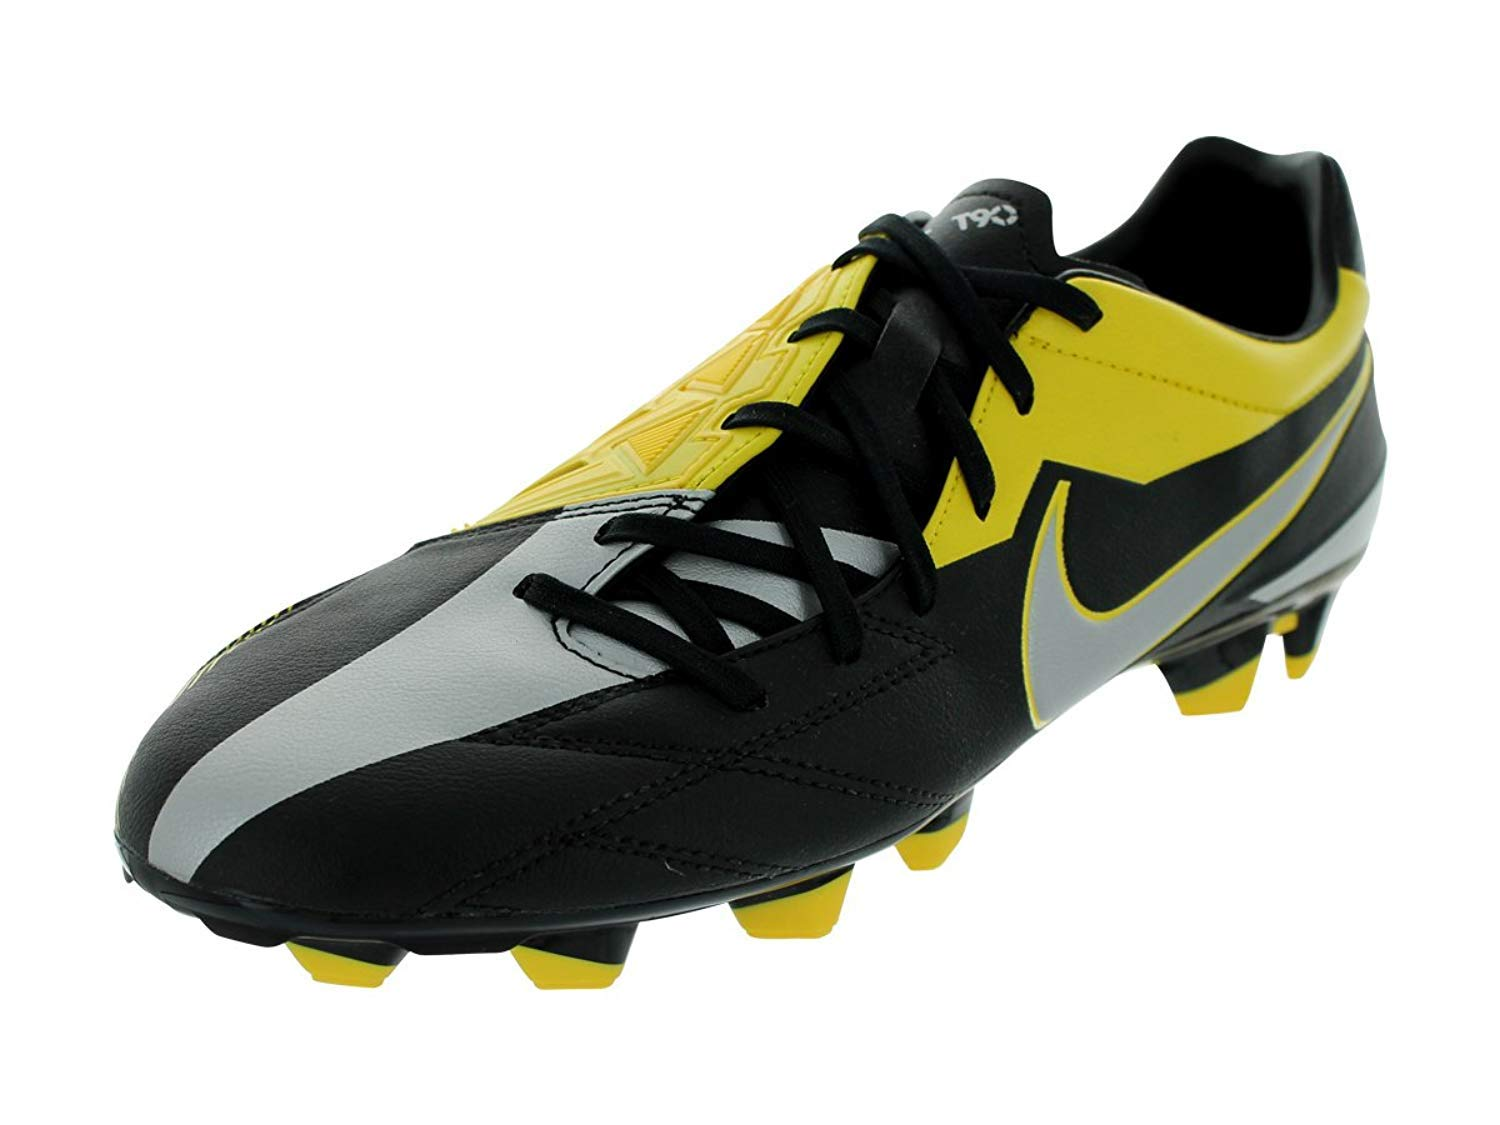 Nike JR T90 Shoot IV FG (2) Yellow, Black